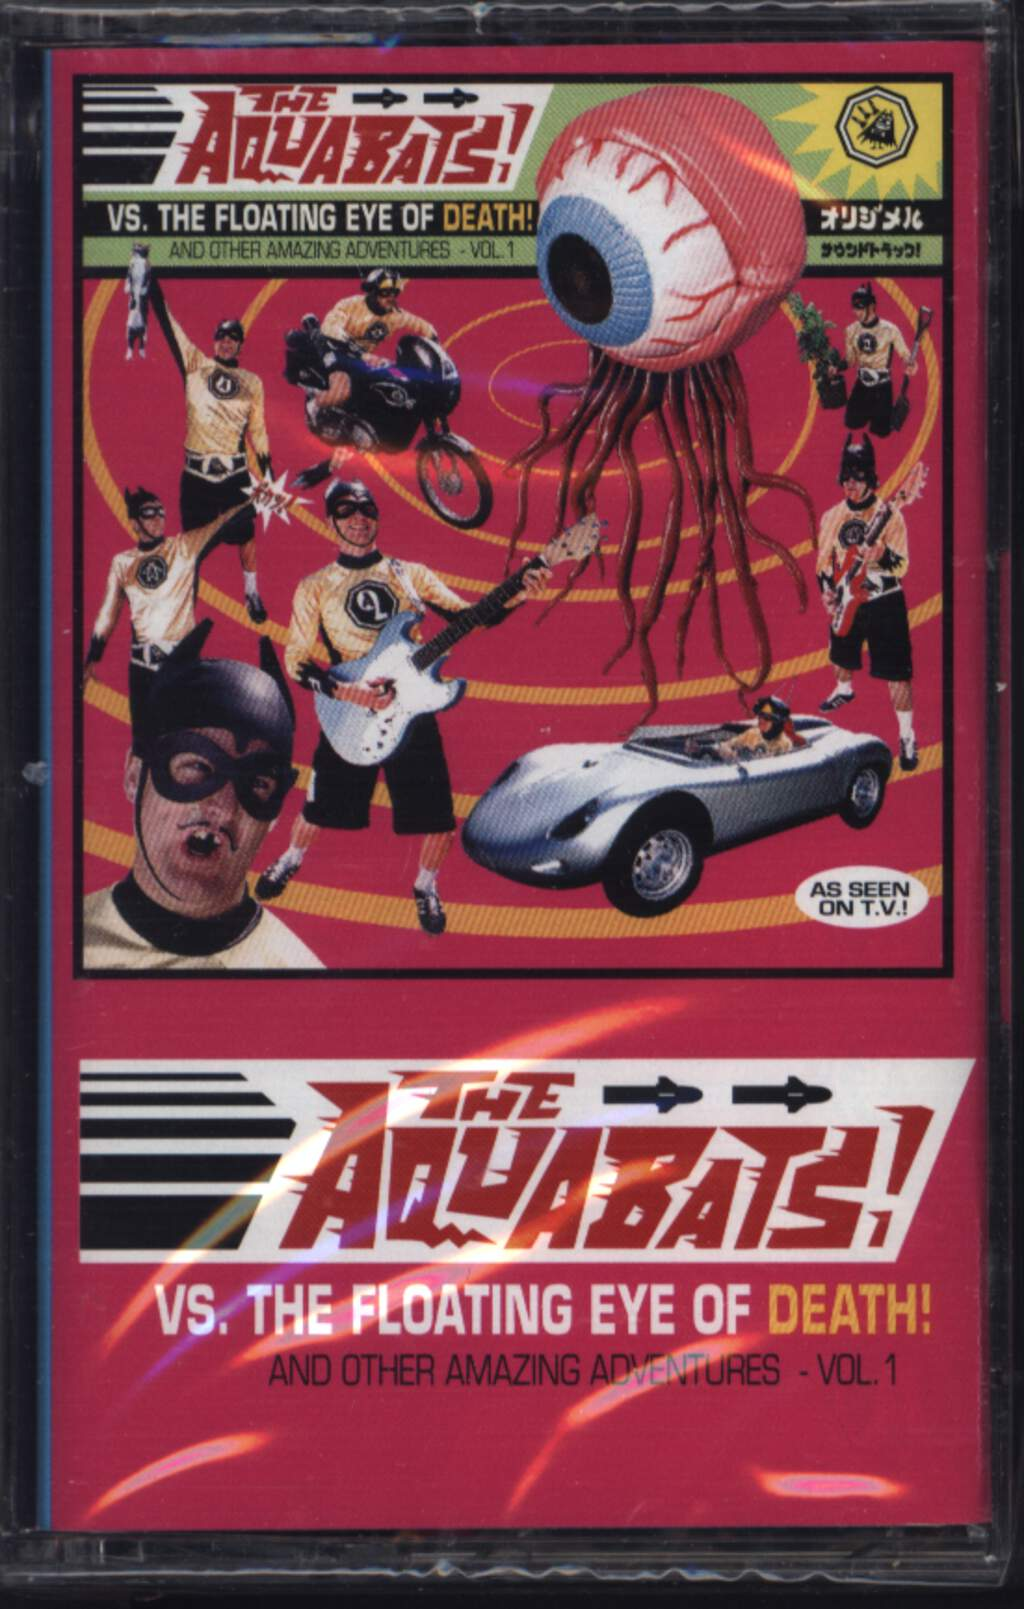 The Aquabats!: Vs. The Floating Eye Of Death! And Other Amazing Adventures - Vol. 1, Compact Cassette